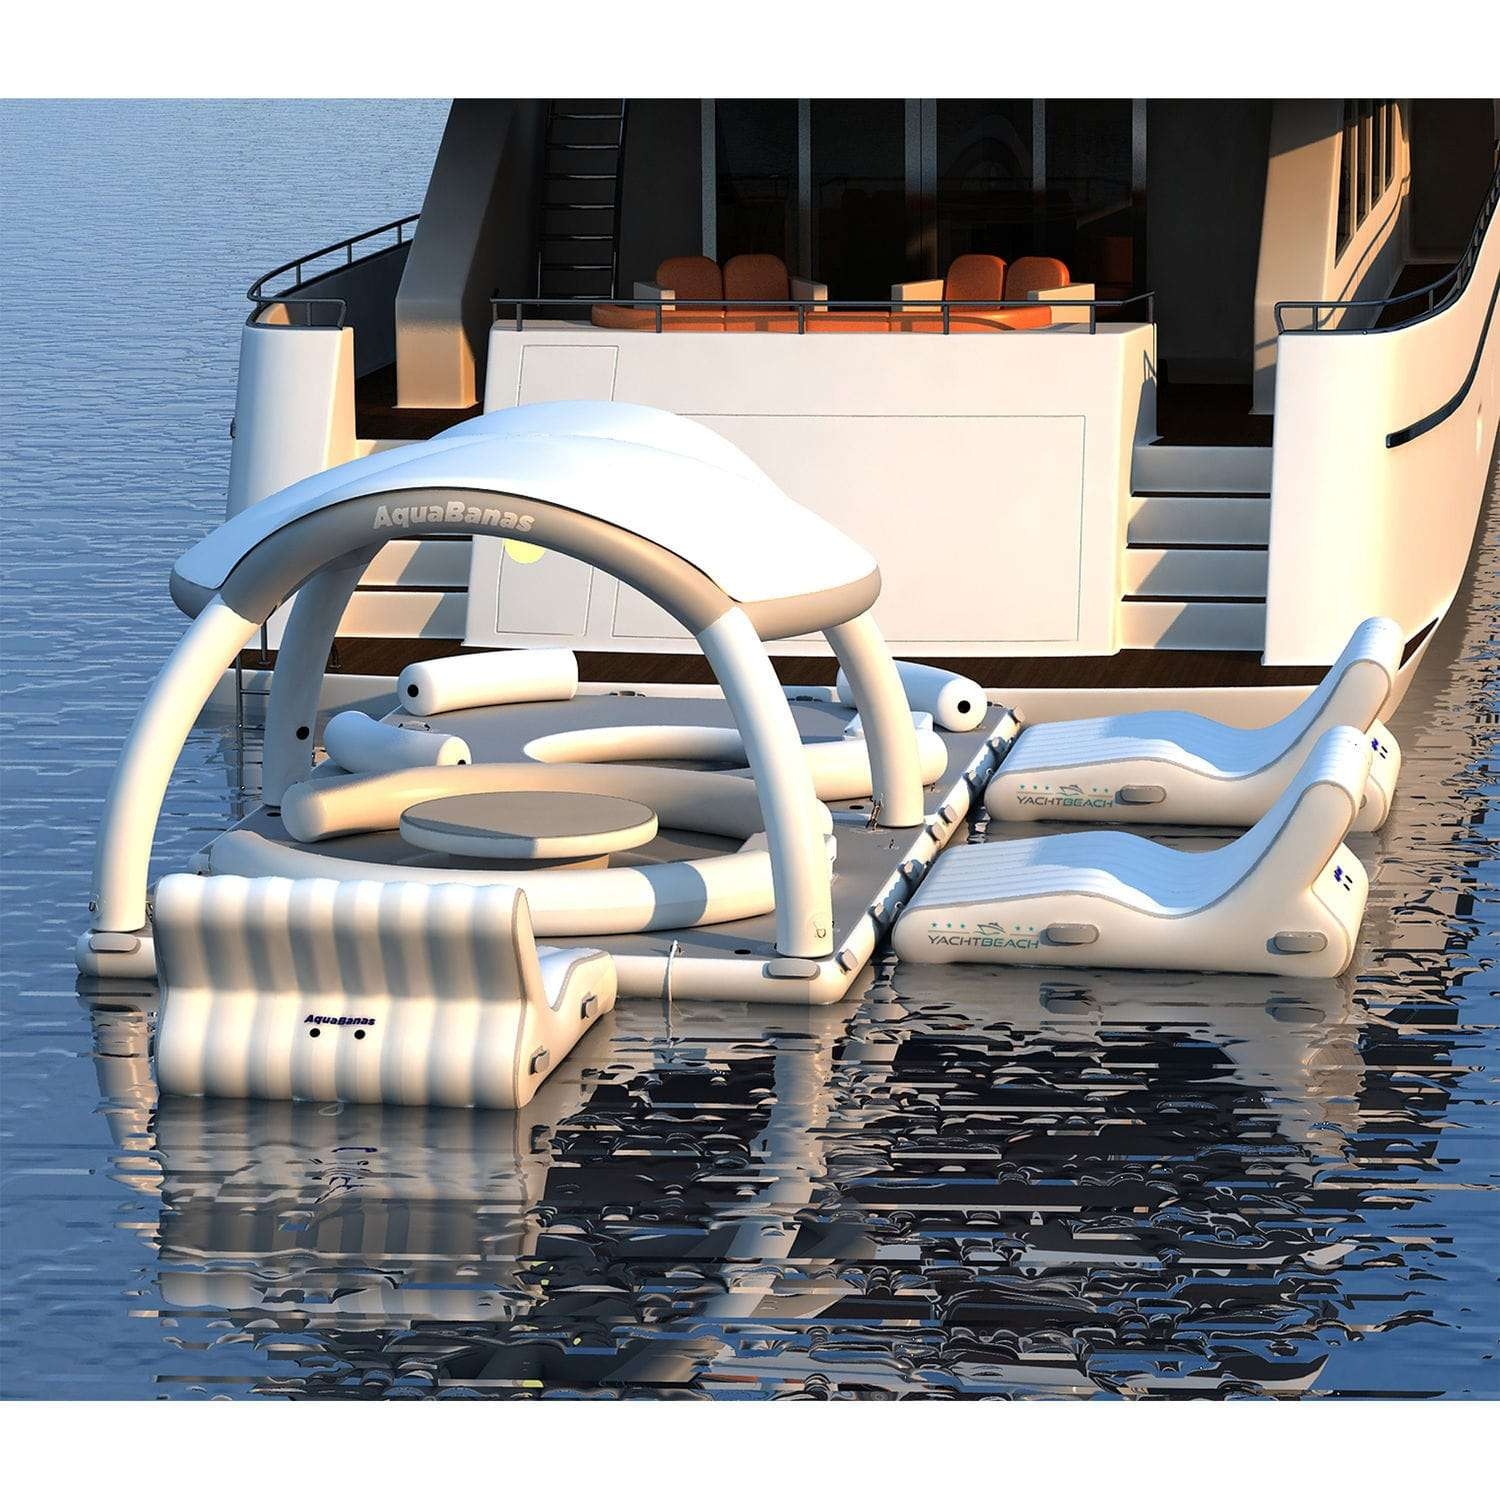 Image of PERSEVERANCE 3 yacht #14